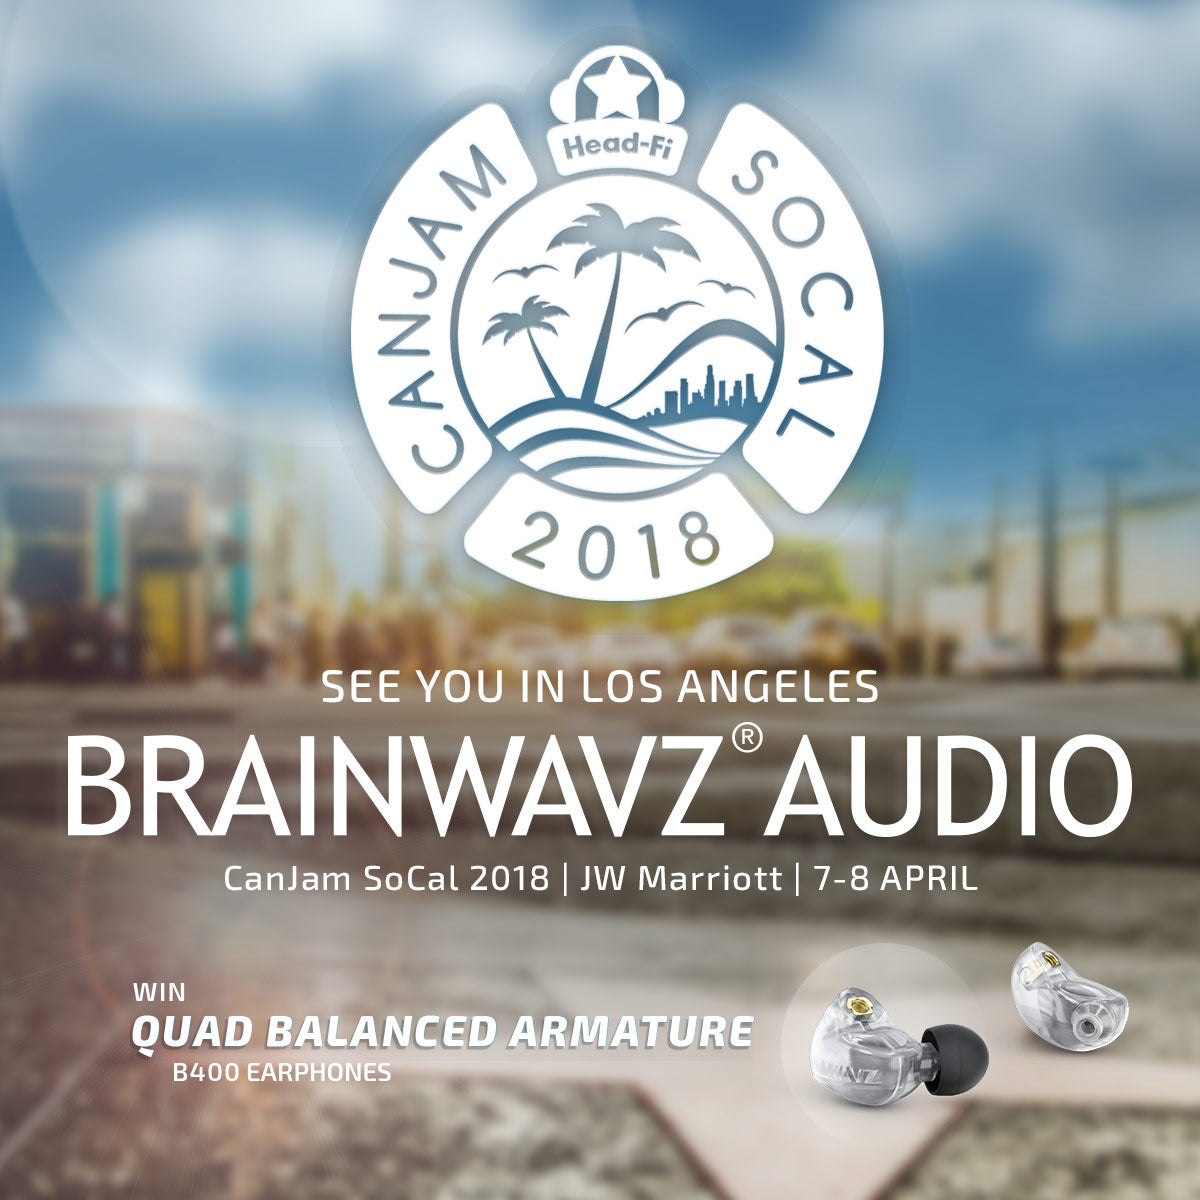 Brainwavz Canjam SoCAL 2018